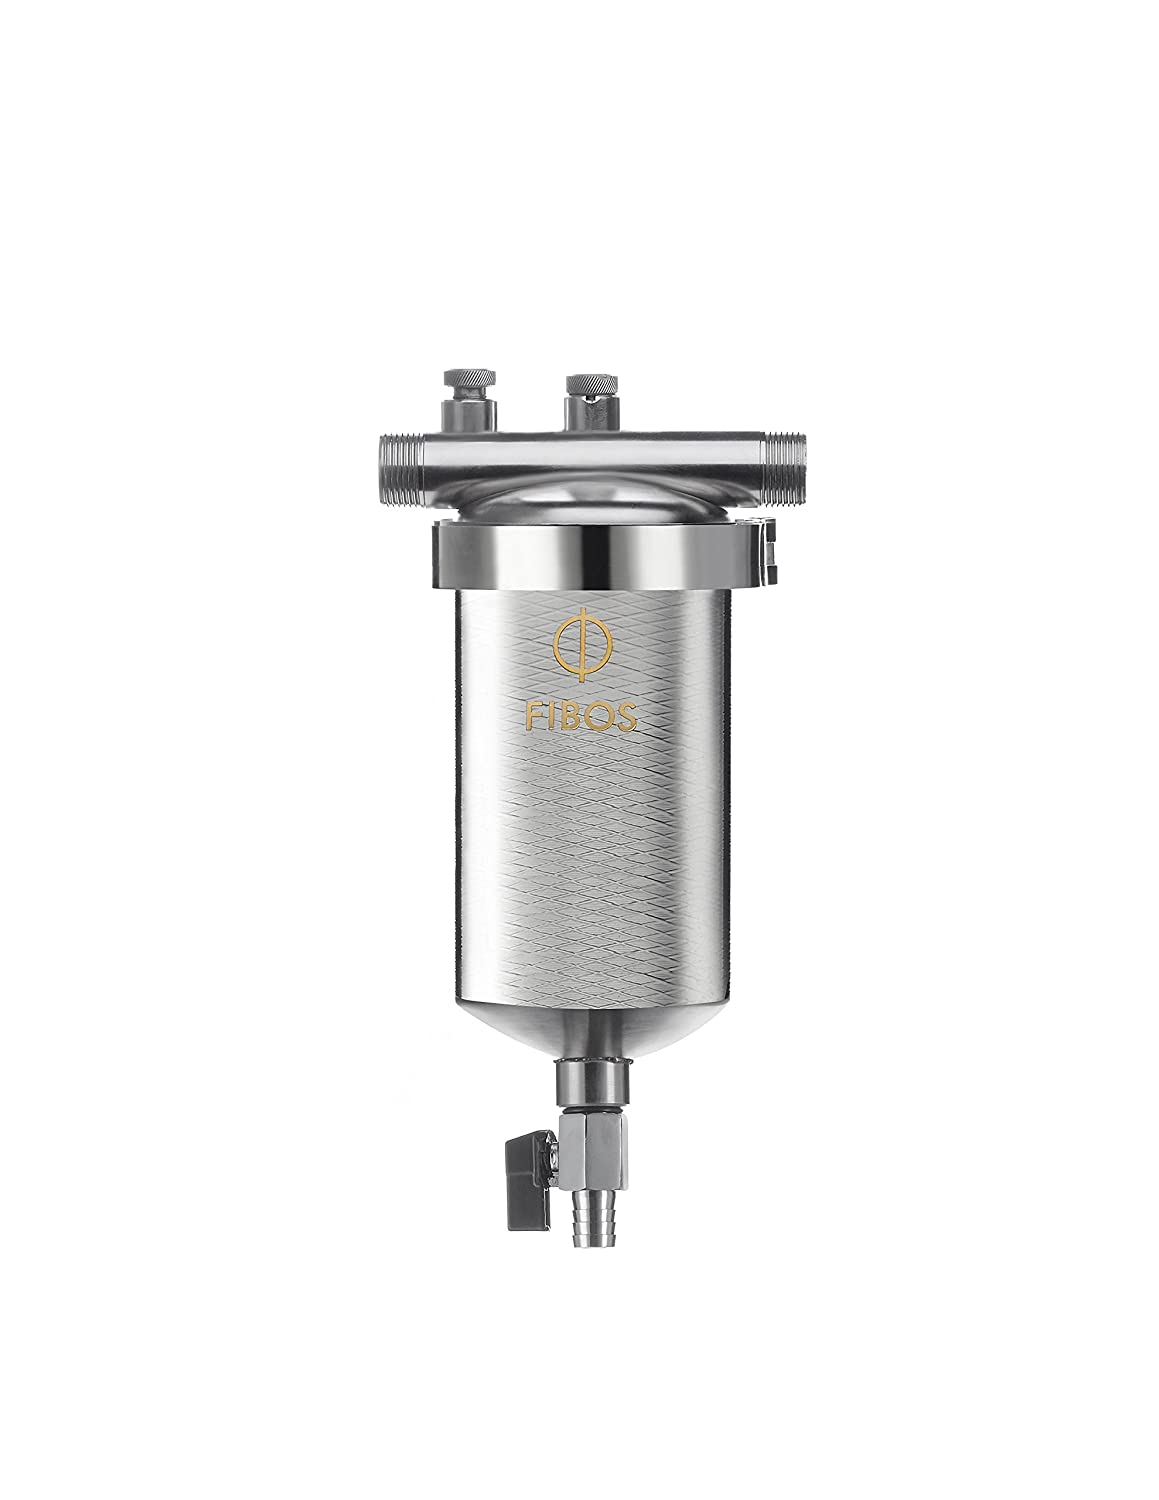 MAIN-FILTER MN-MF0065208 Direct Interchange for MAIN-filter-MF0065208 2 Length Stainless Steel 2 Length Millennium Filters